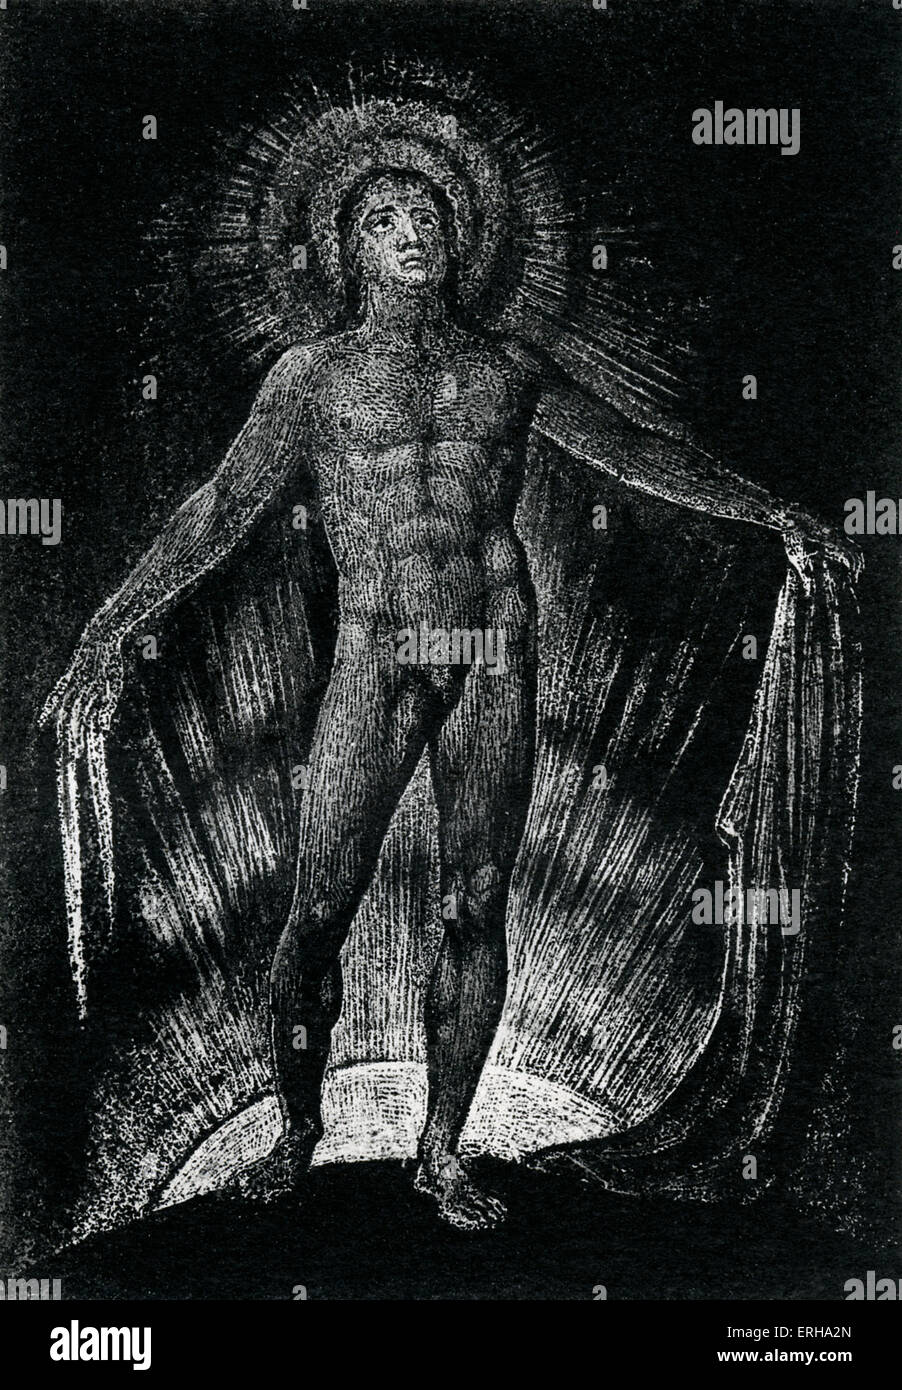 Milton Advancing Disrobed and Ungirded, from page 13 of the poem 'Milton' by William Blake, 1804-1811. English - Stock Image